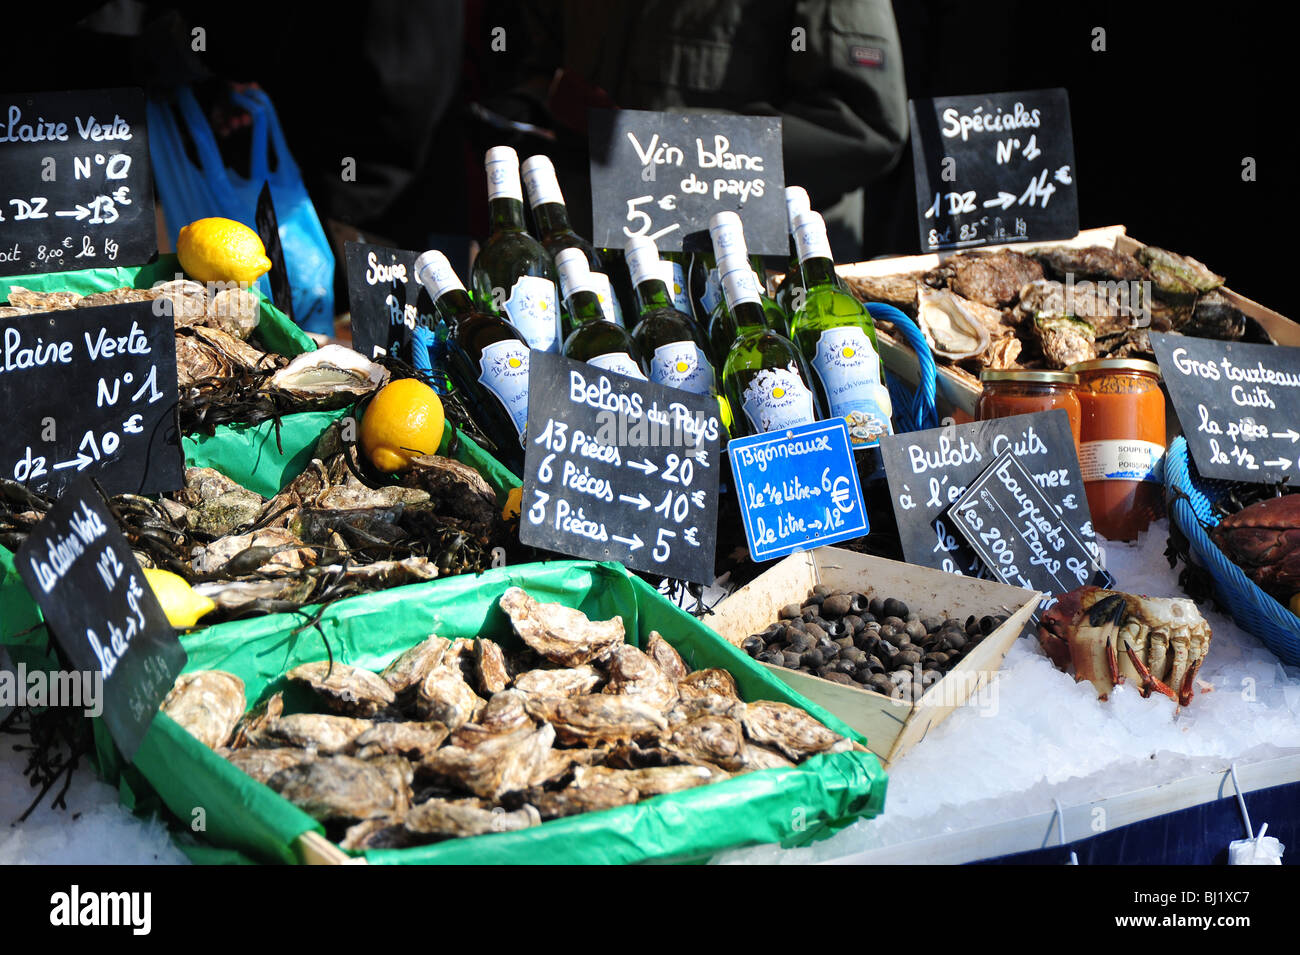 Oysters and wime on display  at a seafood stall at Paris market,  Boulevard Richard Lenoir at Bastille, Paris - Stock Image